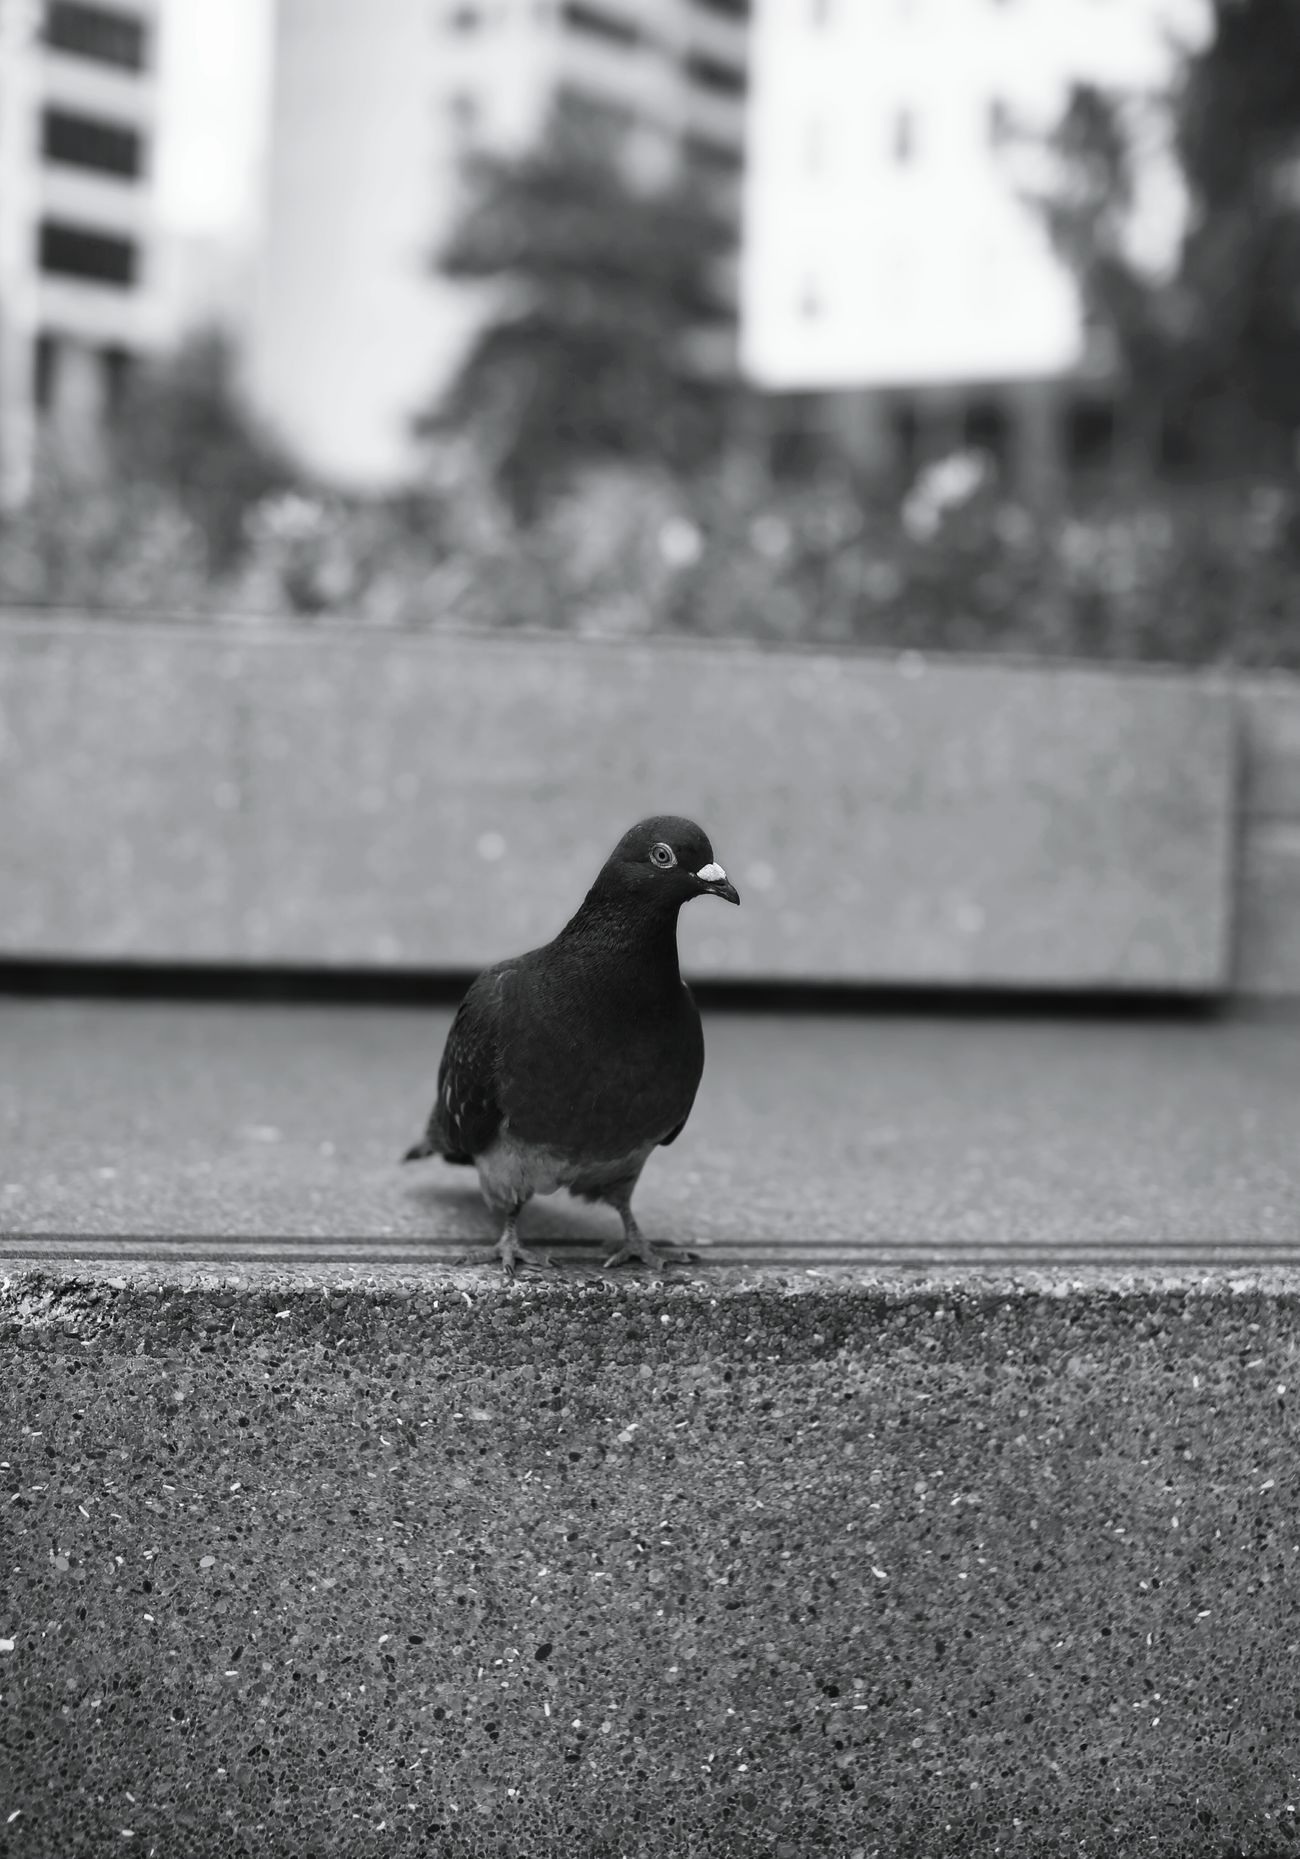 Bird One Animal Animal Themes Bird Day No People Outdoors Nature Animal Wildlife Geometric Shape Sociality Lifestyles Inside Things TakeoverContrast Focus On Shadow Check This Out Reality Mind  The Way Forward Arts Old-fashioned Playing Monochrome Photography Inspired